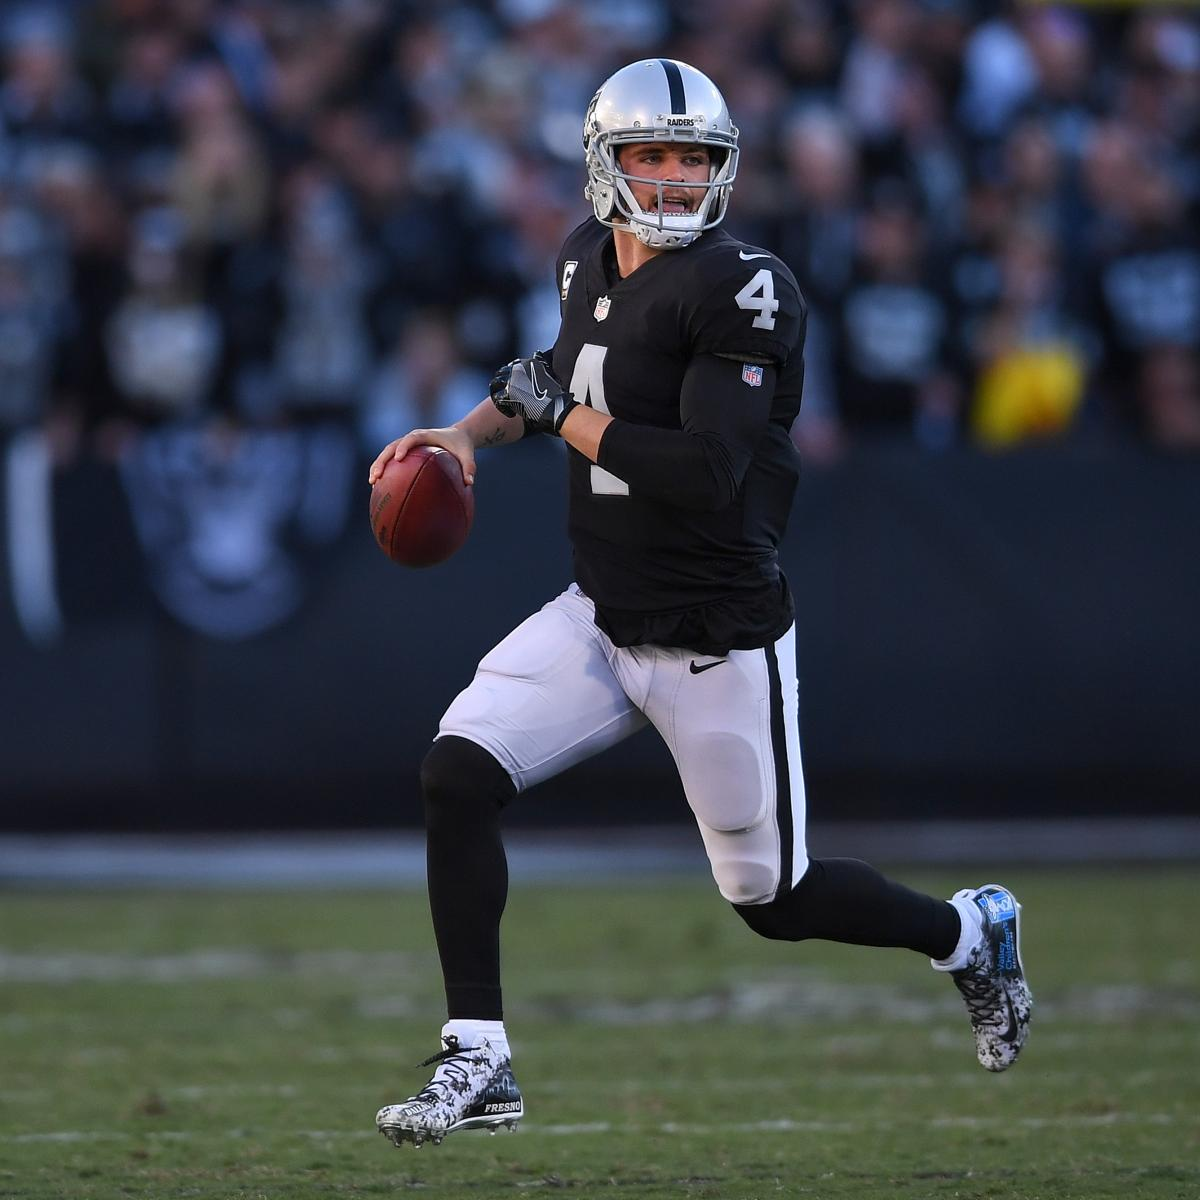 Oakland Raiders vs. Kansas City Chiefs Odds, Analysis, NFL Betting Pick